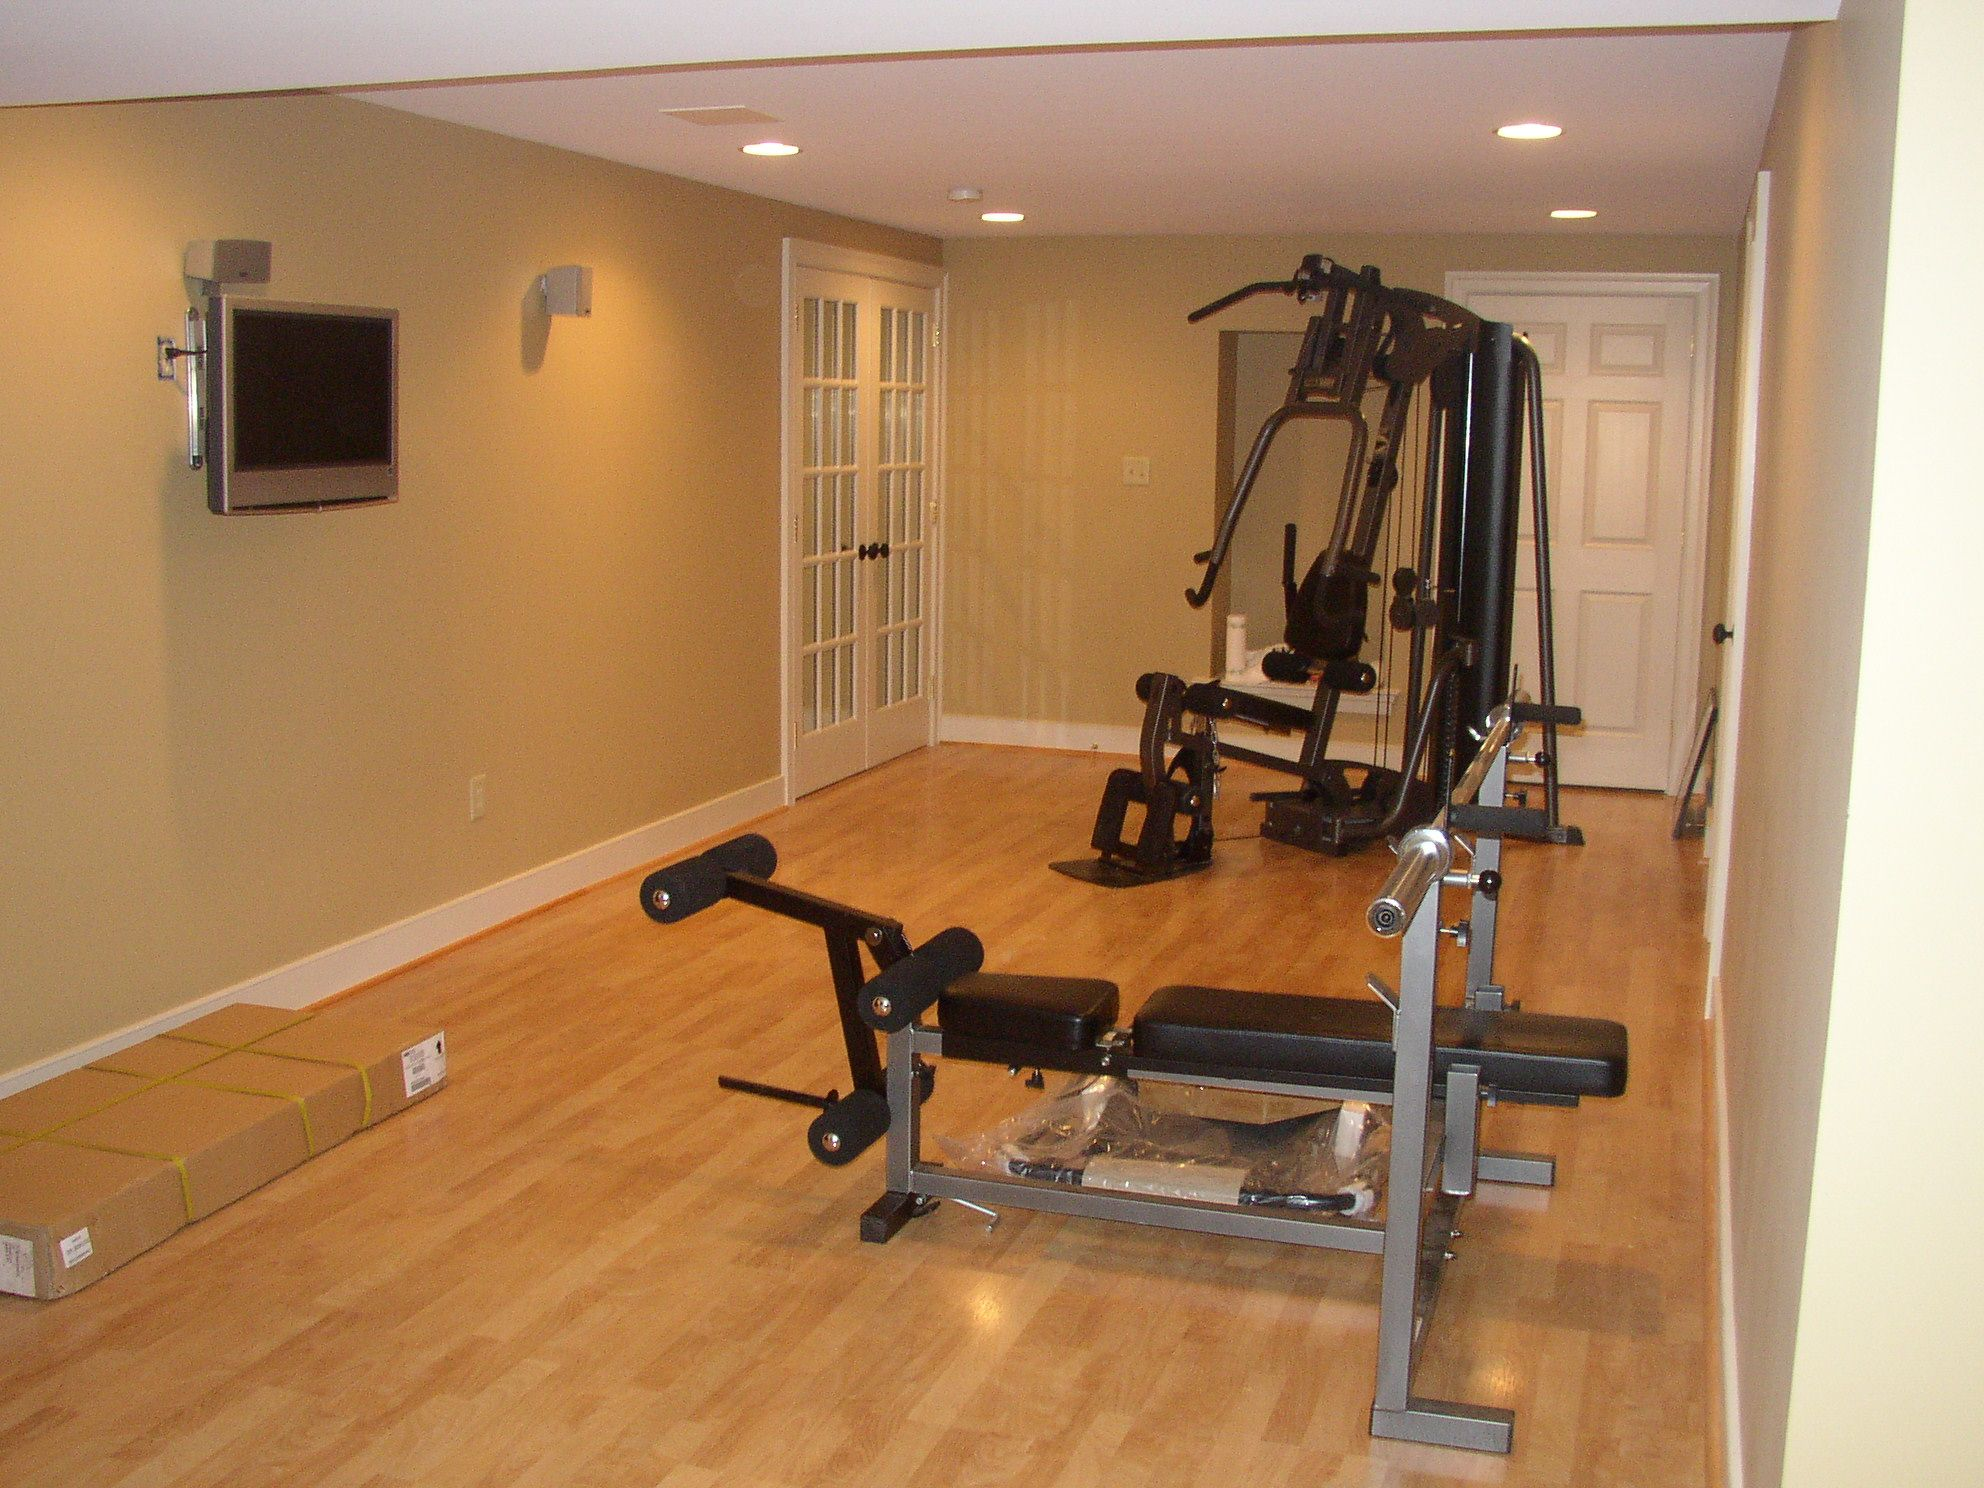 Bat Remodeling Pictures Workout Room With Laminate Flooring